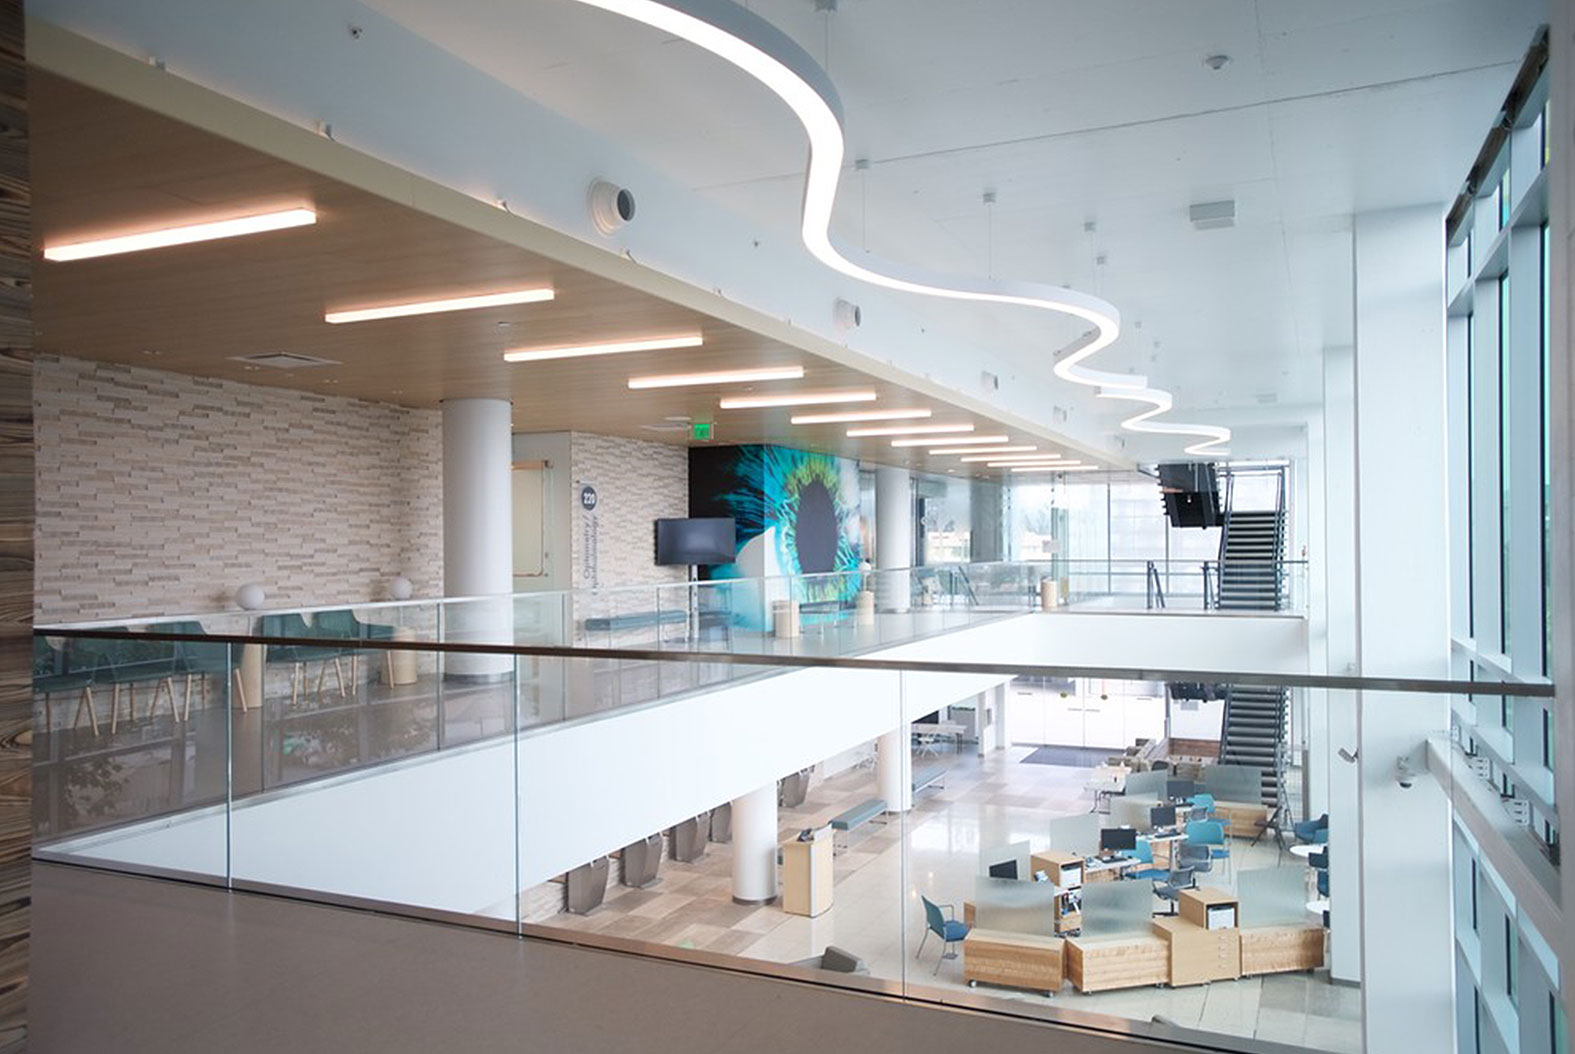 Kaiser Permanente opens new stateoftheart medical clinic in Los Angeles  Health Facilities